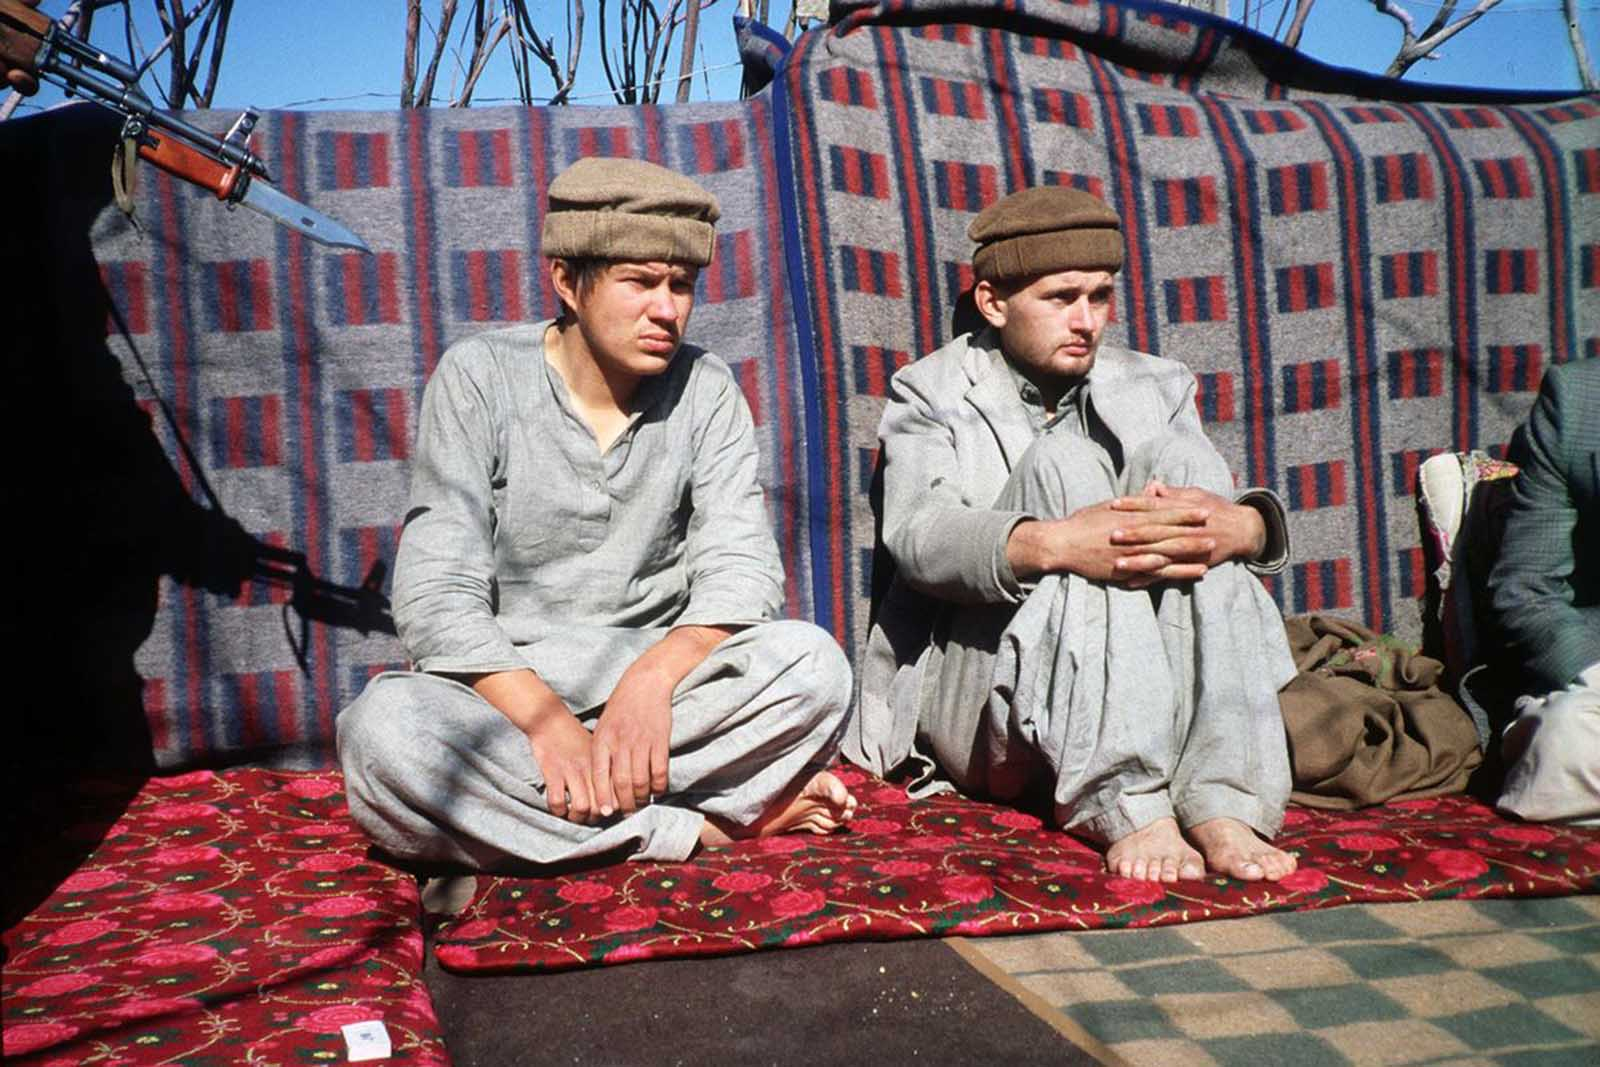 Two Soviet soldiers taken prisoner by the Afghan resistance forces loyal to the fundamentalist faction of Hezb-i-Islami in the Afghan province of Zabul in September of 1981. The prisoners had told journalists then they would be executed by the Afghan resistance for refusing to covert to Islam to make eligible to be tried by an Islamic court.